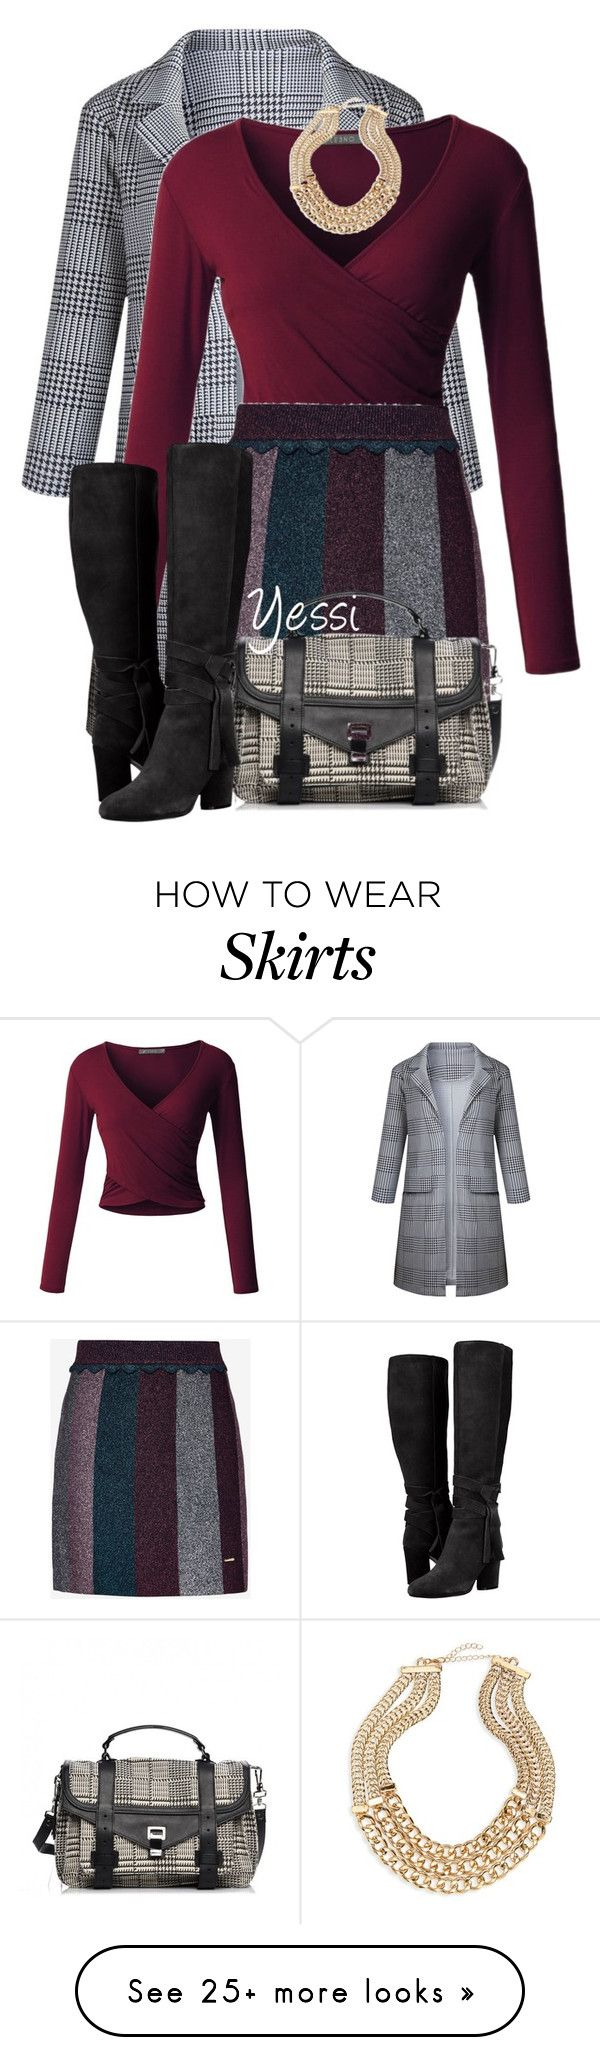 """""""~  Long Jacket with Skirt  ~"""" by pretty-fashion-designs on Polyvore featuring LE3NO, Ted Baker, BP. and Proenza Schouler"""